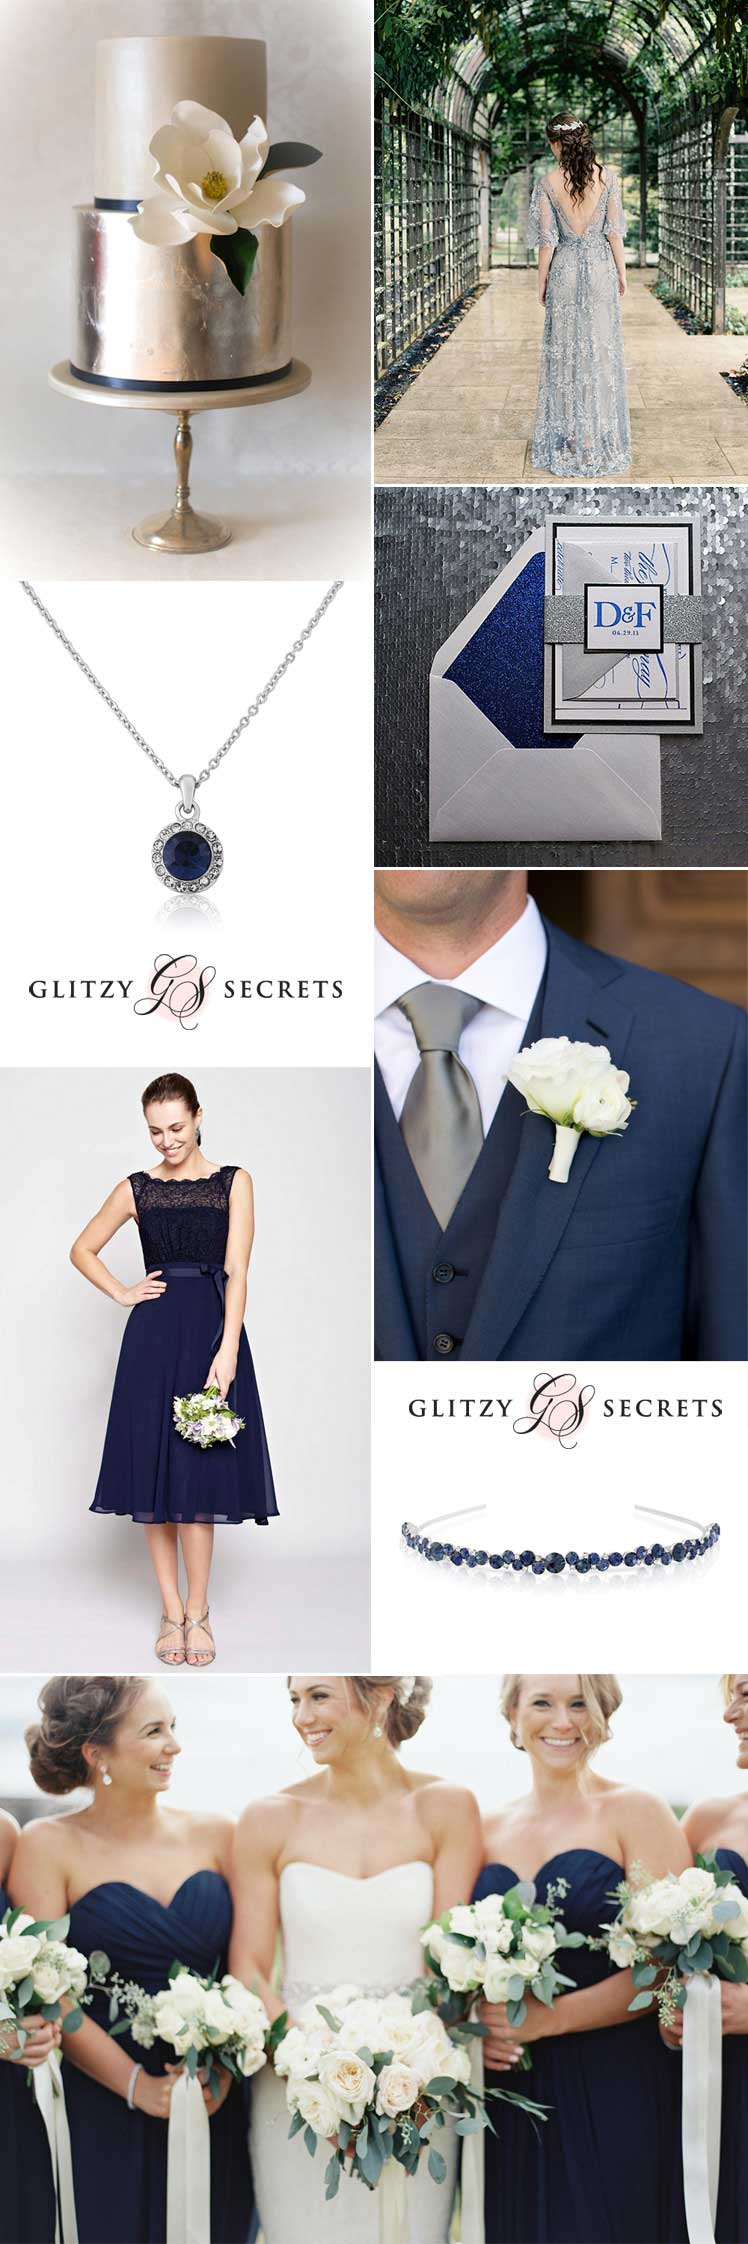 fabulous ideas for a navy and silver wedding